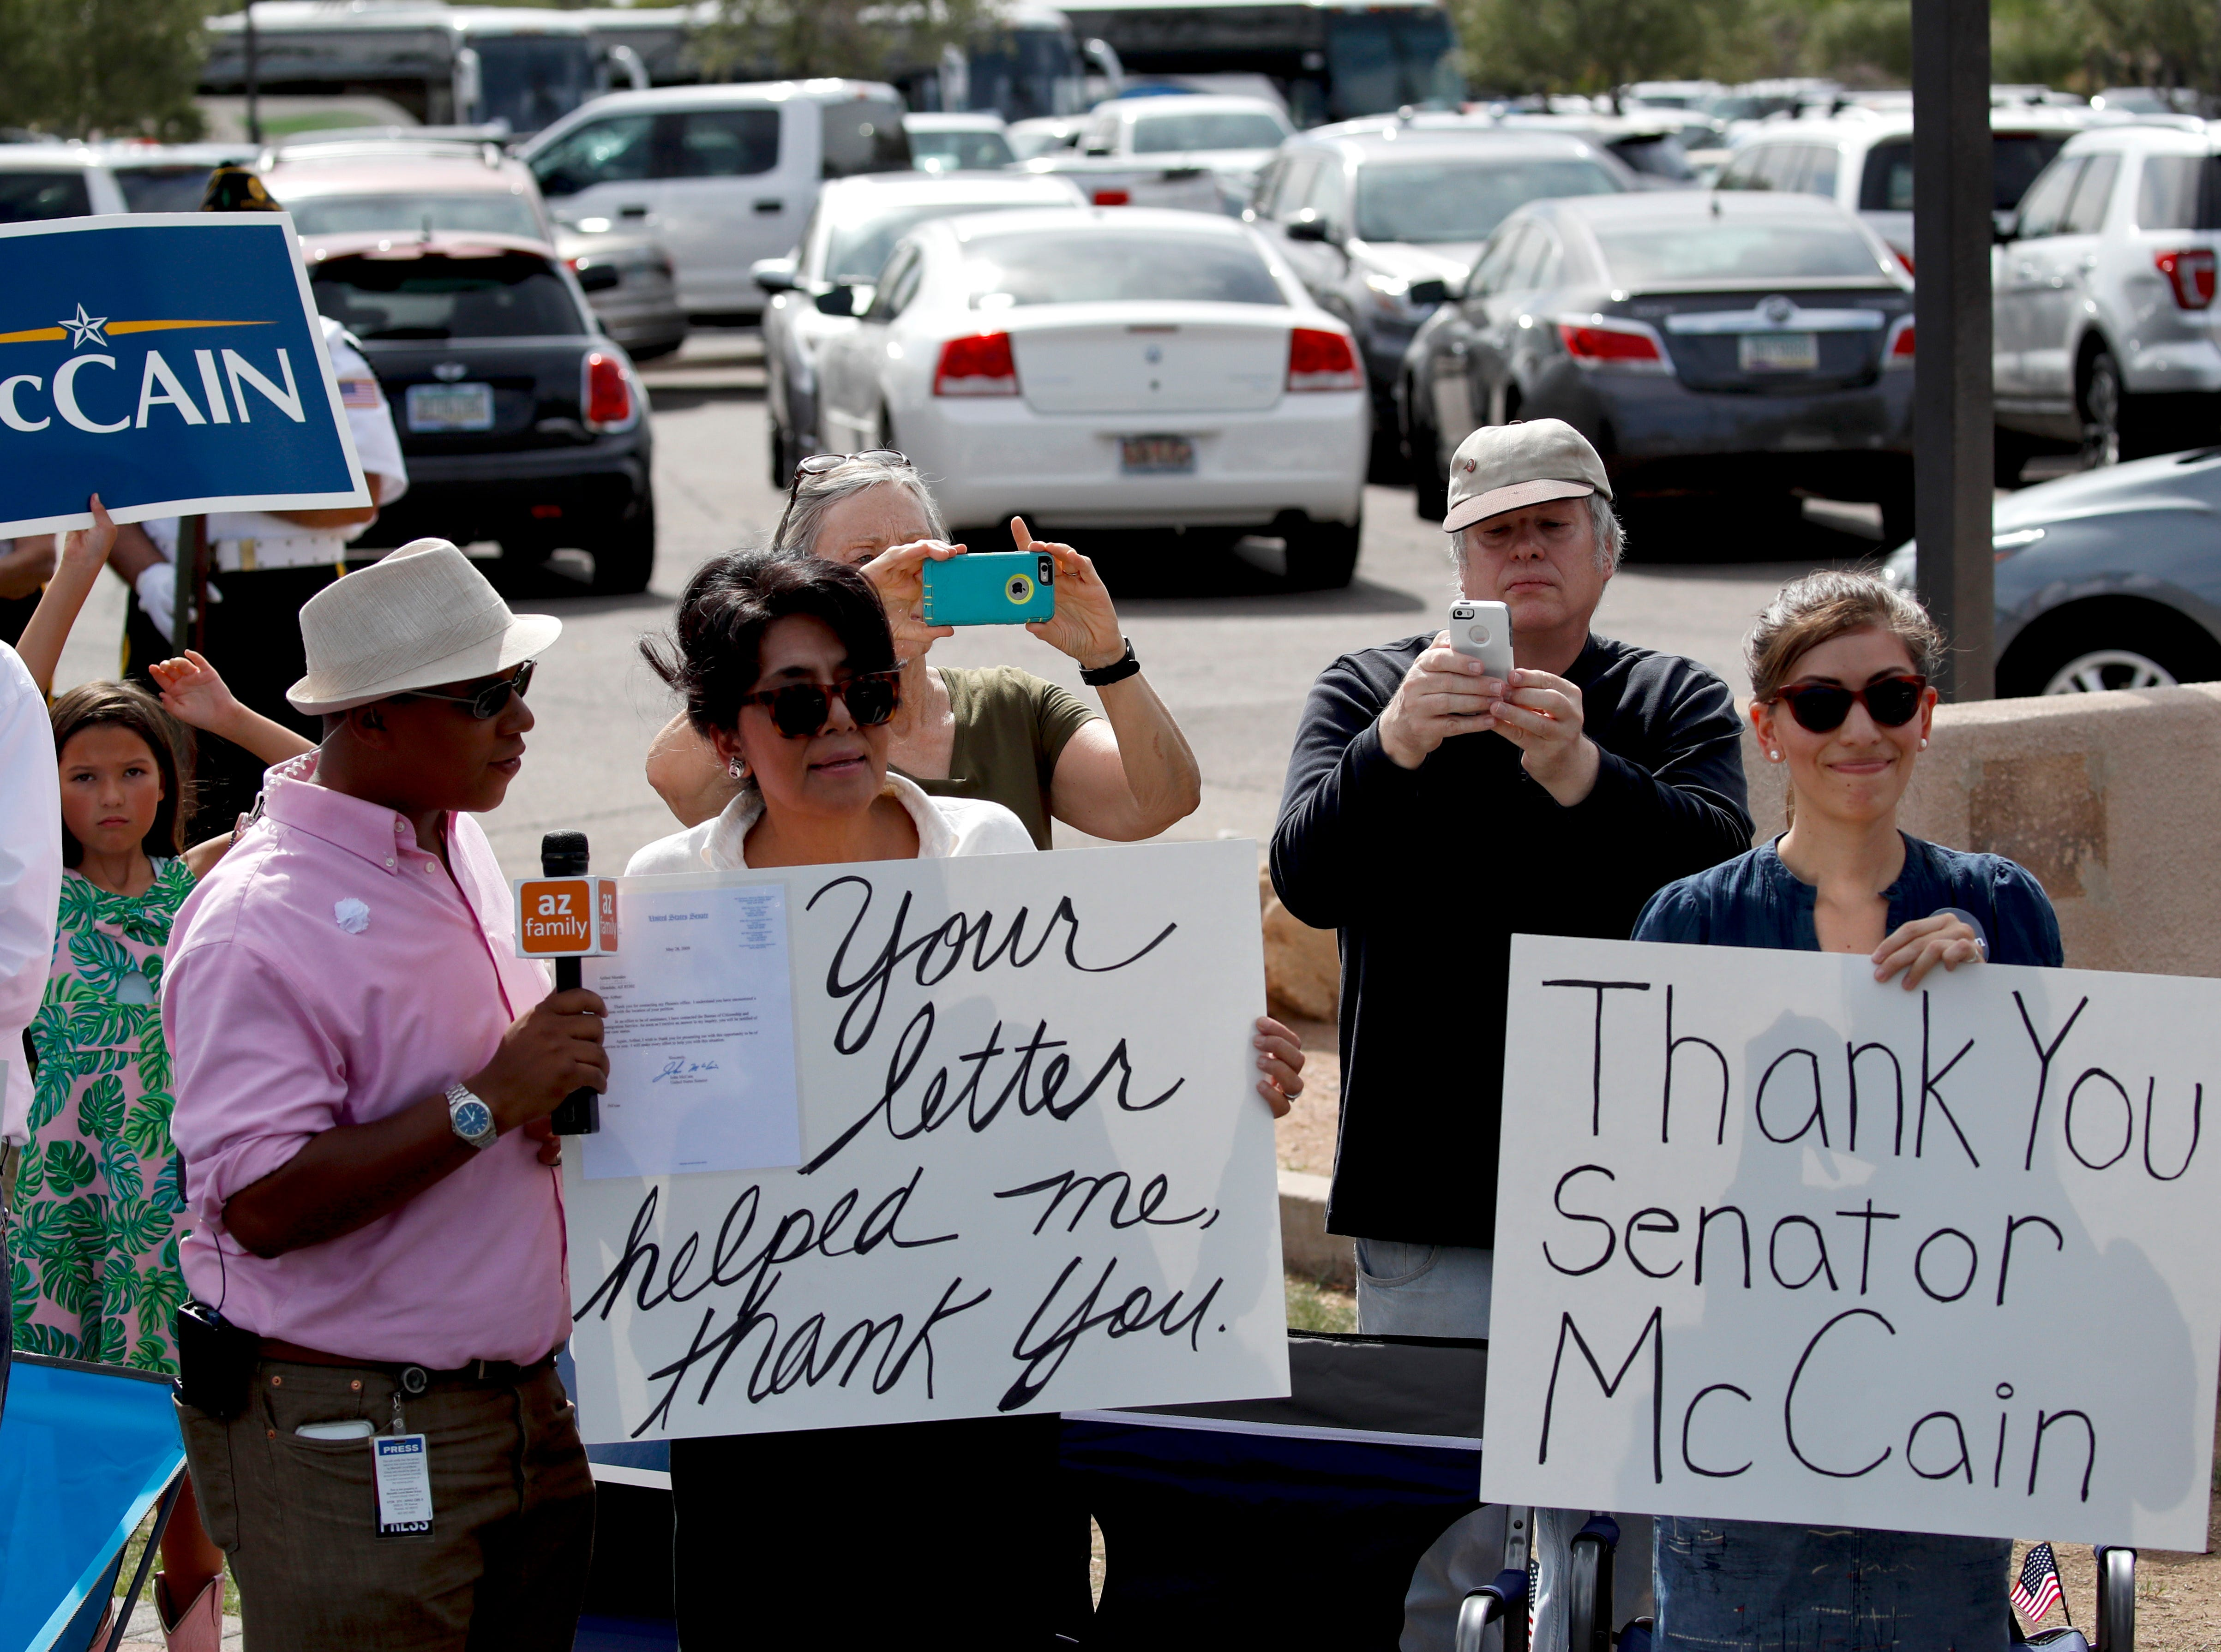 People watch the motorcade carrying the casket of Sen. John McCain, R-Ariz. from the Arizona Capitol to the North Phoenix Baptist Church for a memorial service on Aug. 30, 2018, in Phoenix.